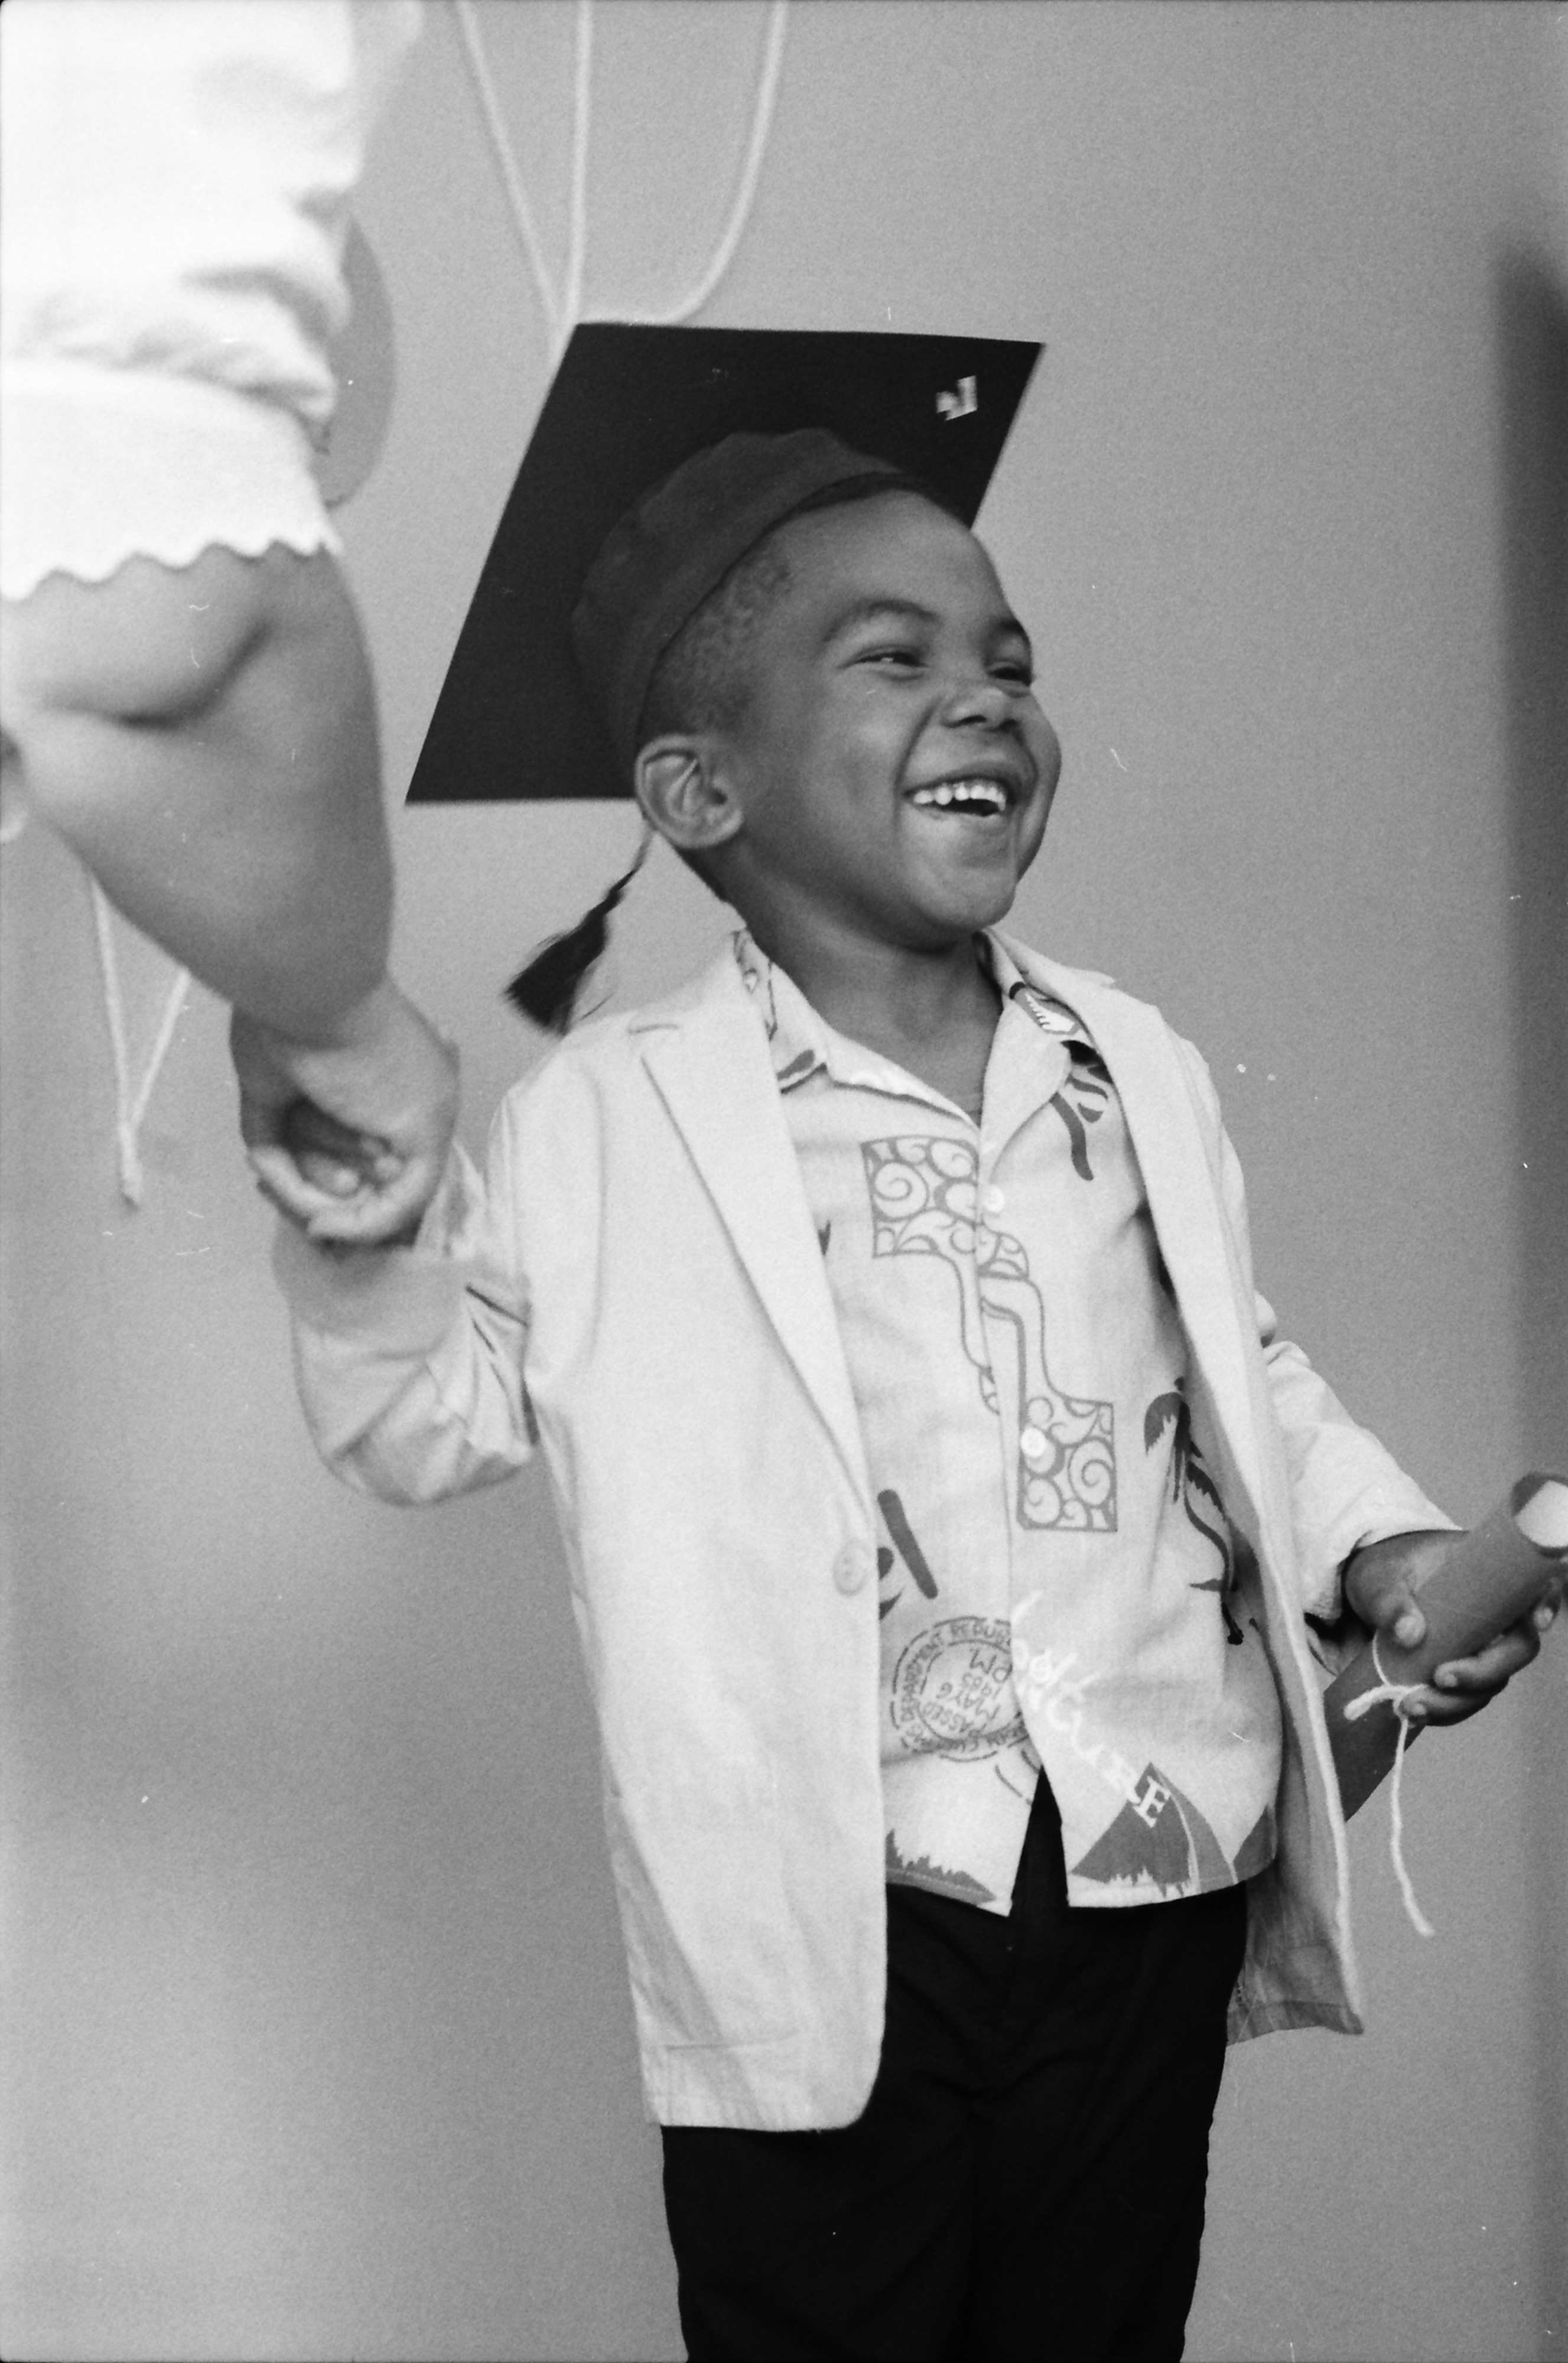 Jayson Atkins Receives Diploma at Ypsilanti Pre-School Graduation at Parkridge Community Center, May 1986 image